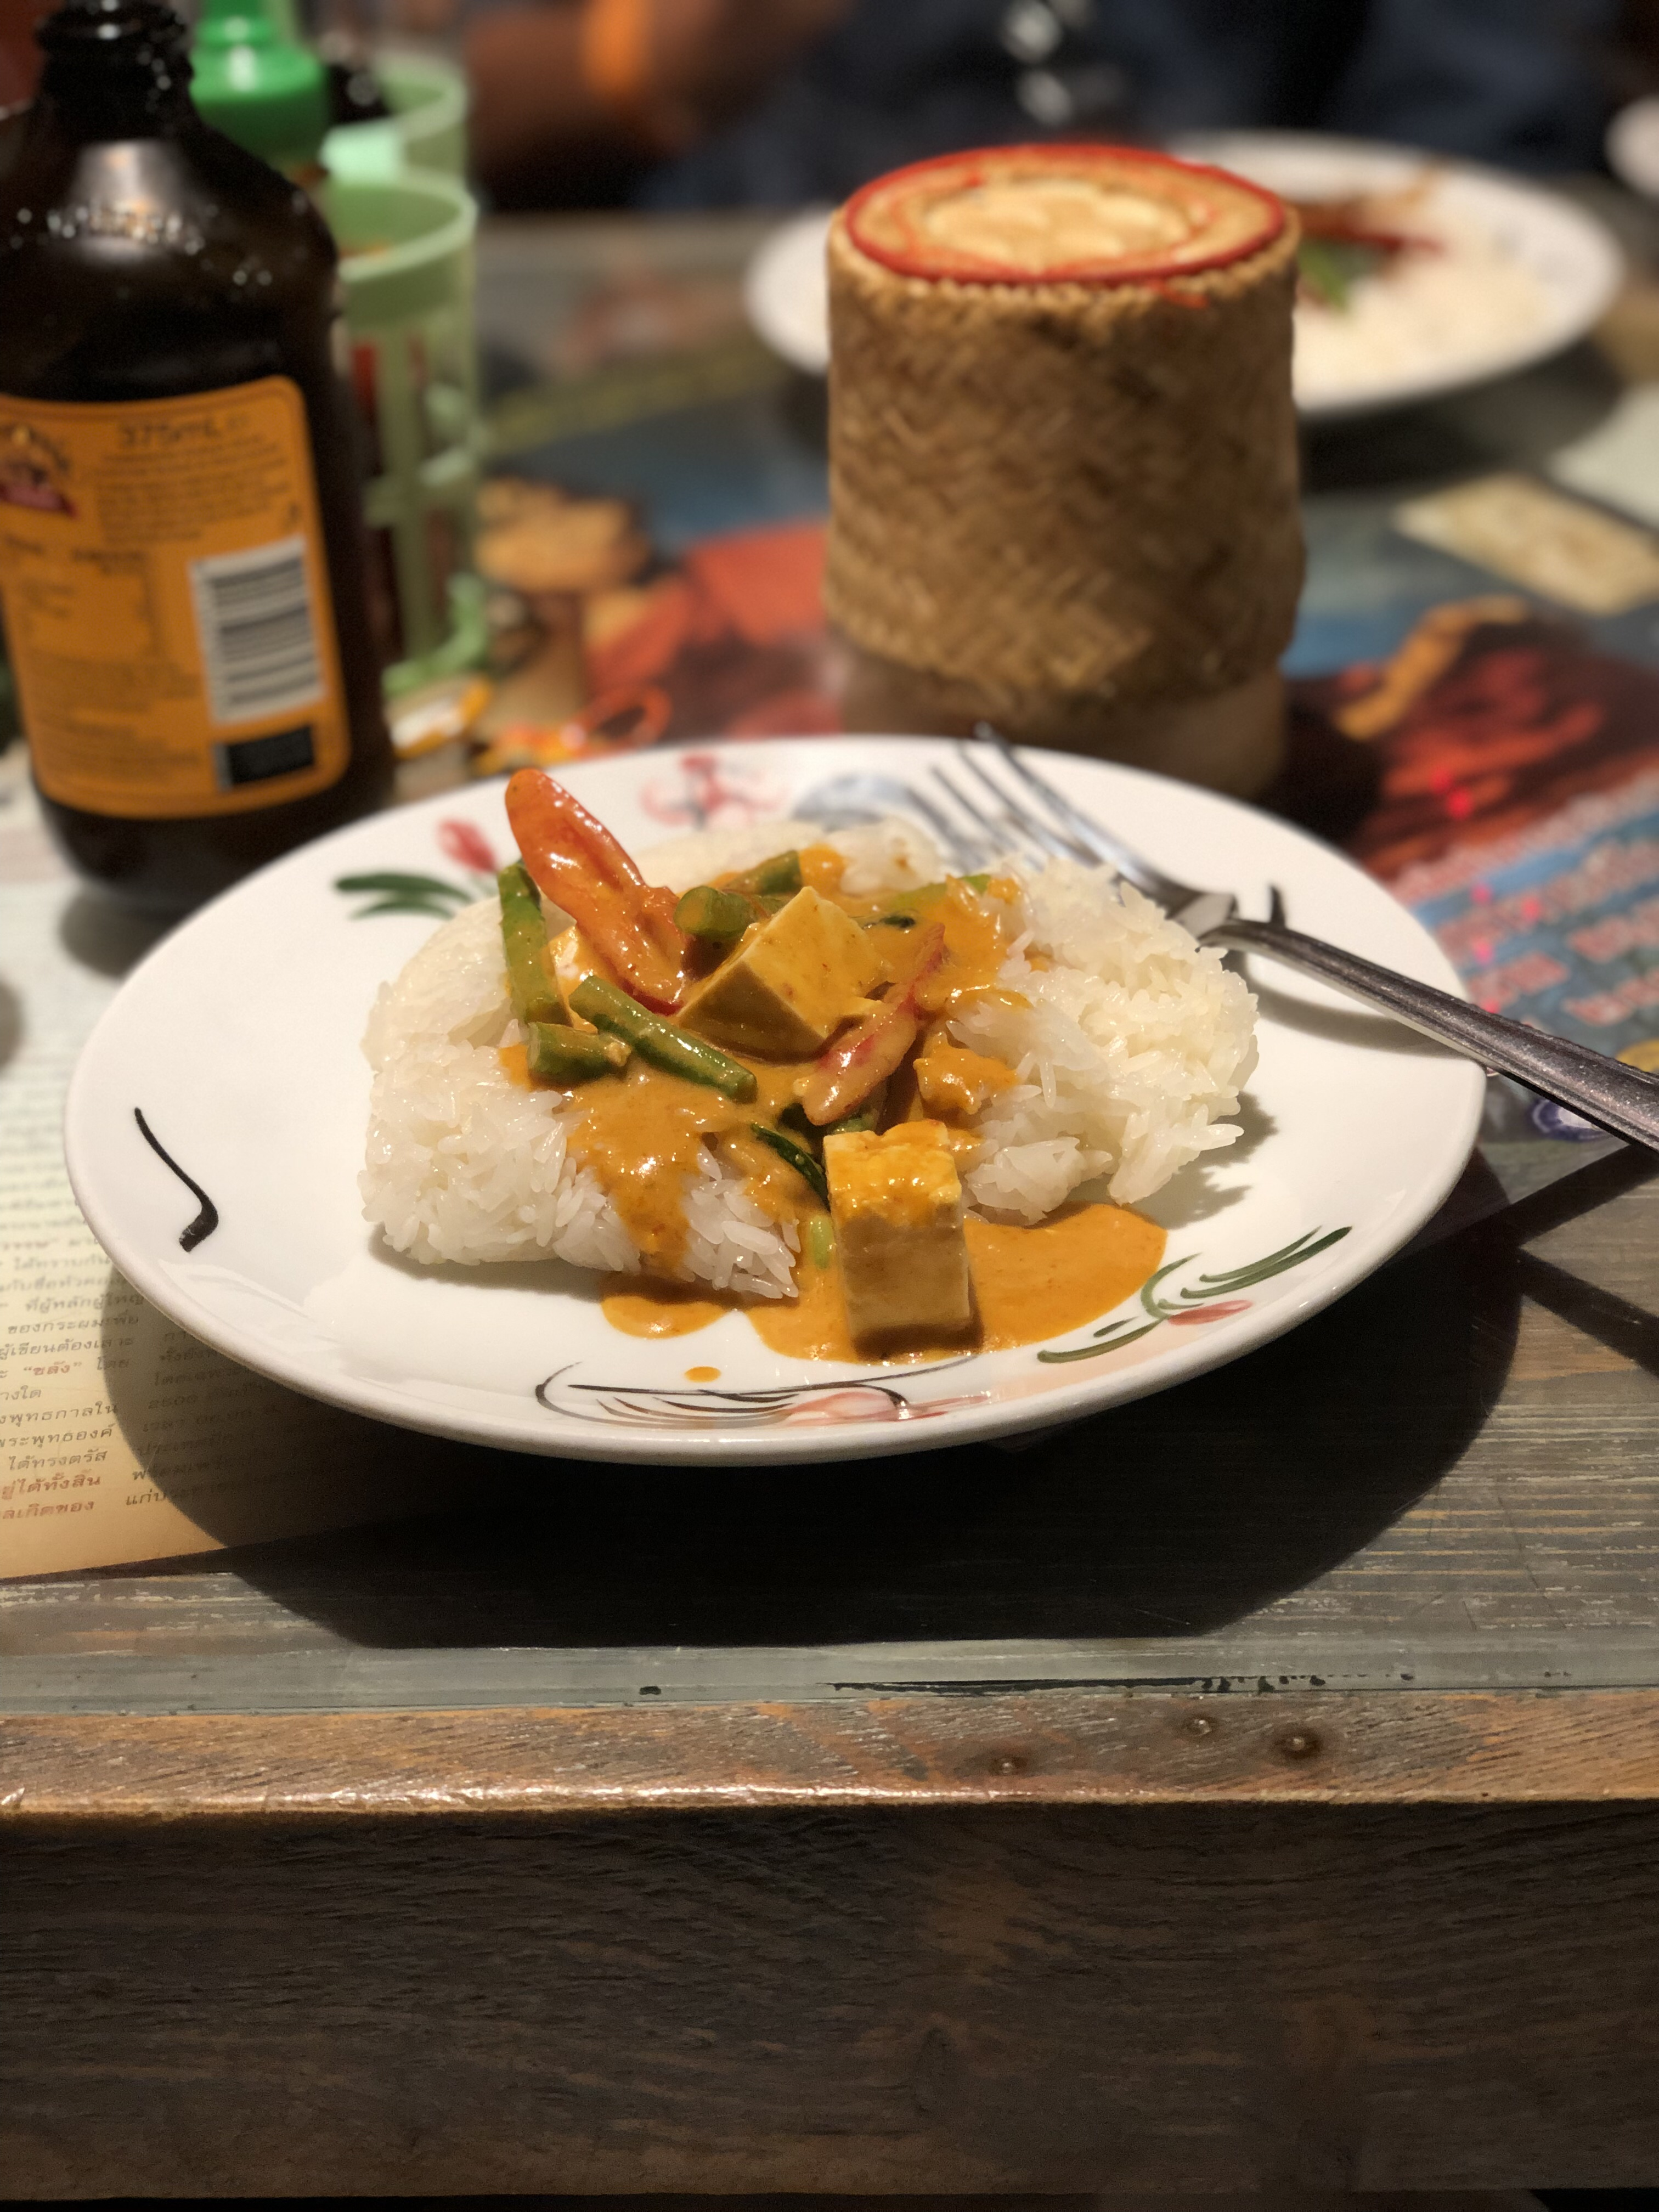 Tofu Panang Curry with sticky rice